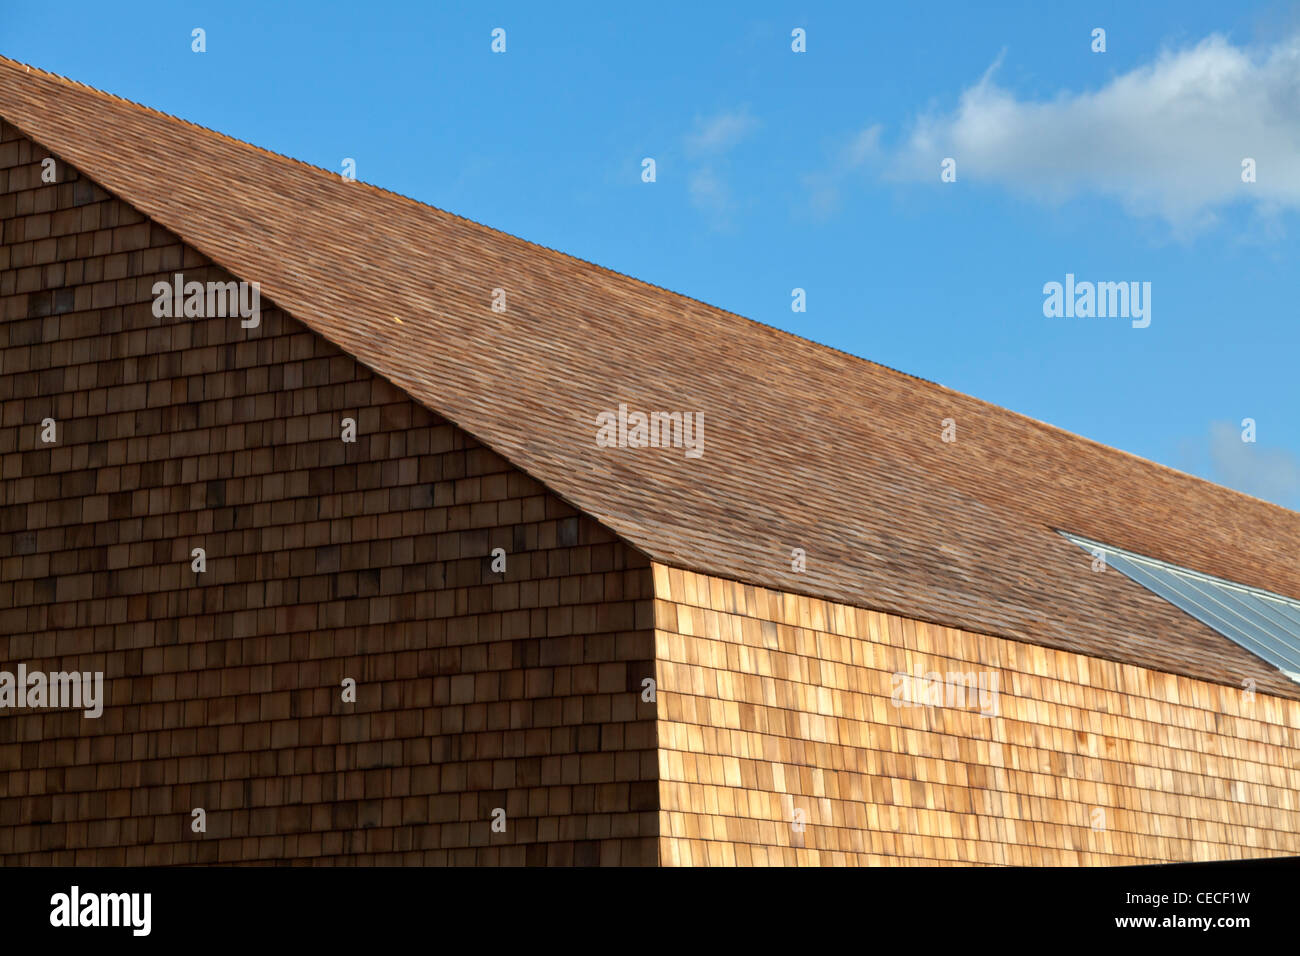 Shingle Wall And Roof Tiles On Activity Centre Building